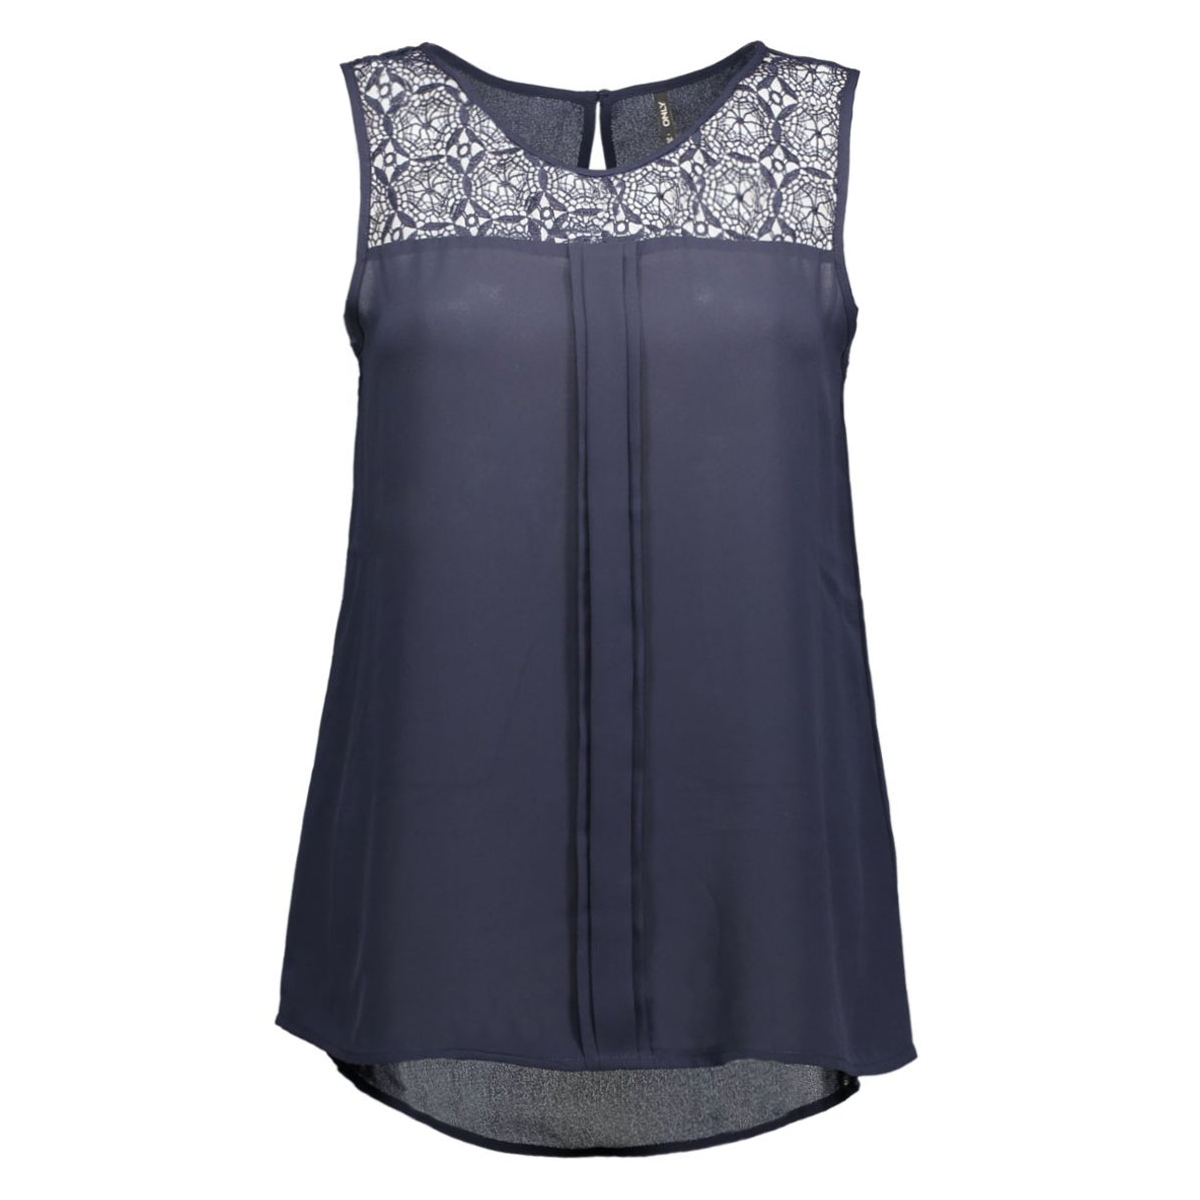 onlvenice s/l lace top wvn 15123343 only top night sky